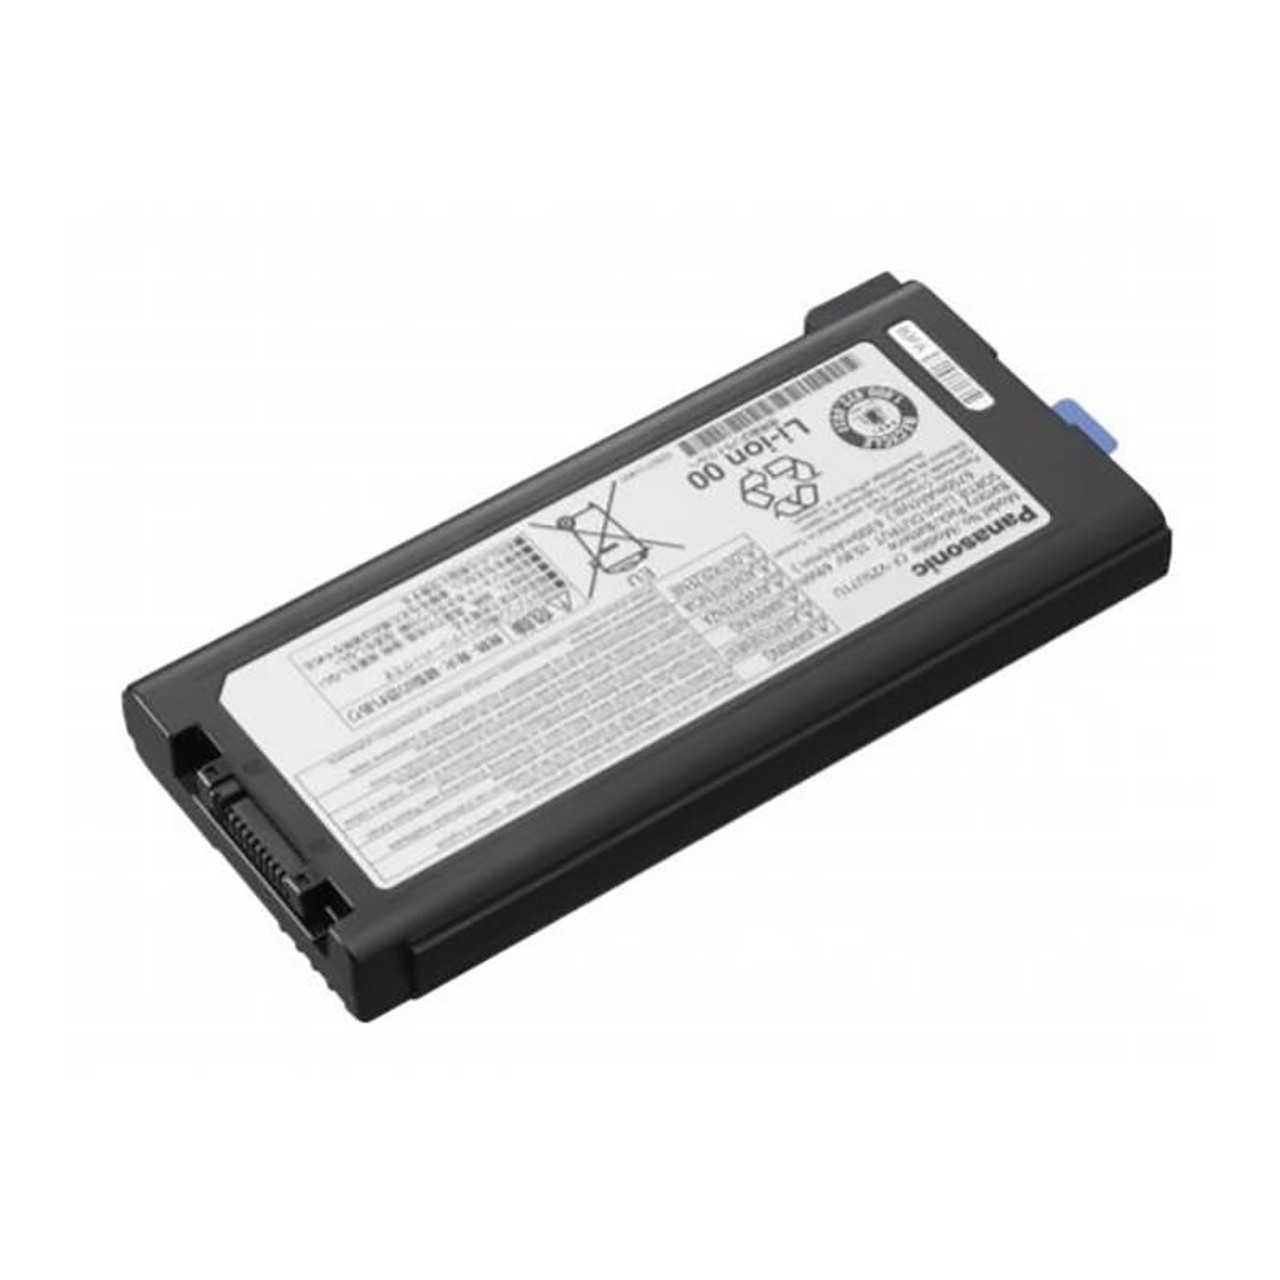 Image for Panasonic Long Life 9-Cell Battery for CF-31/53 CX Computer Superstore